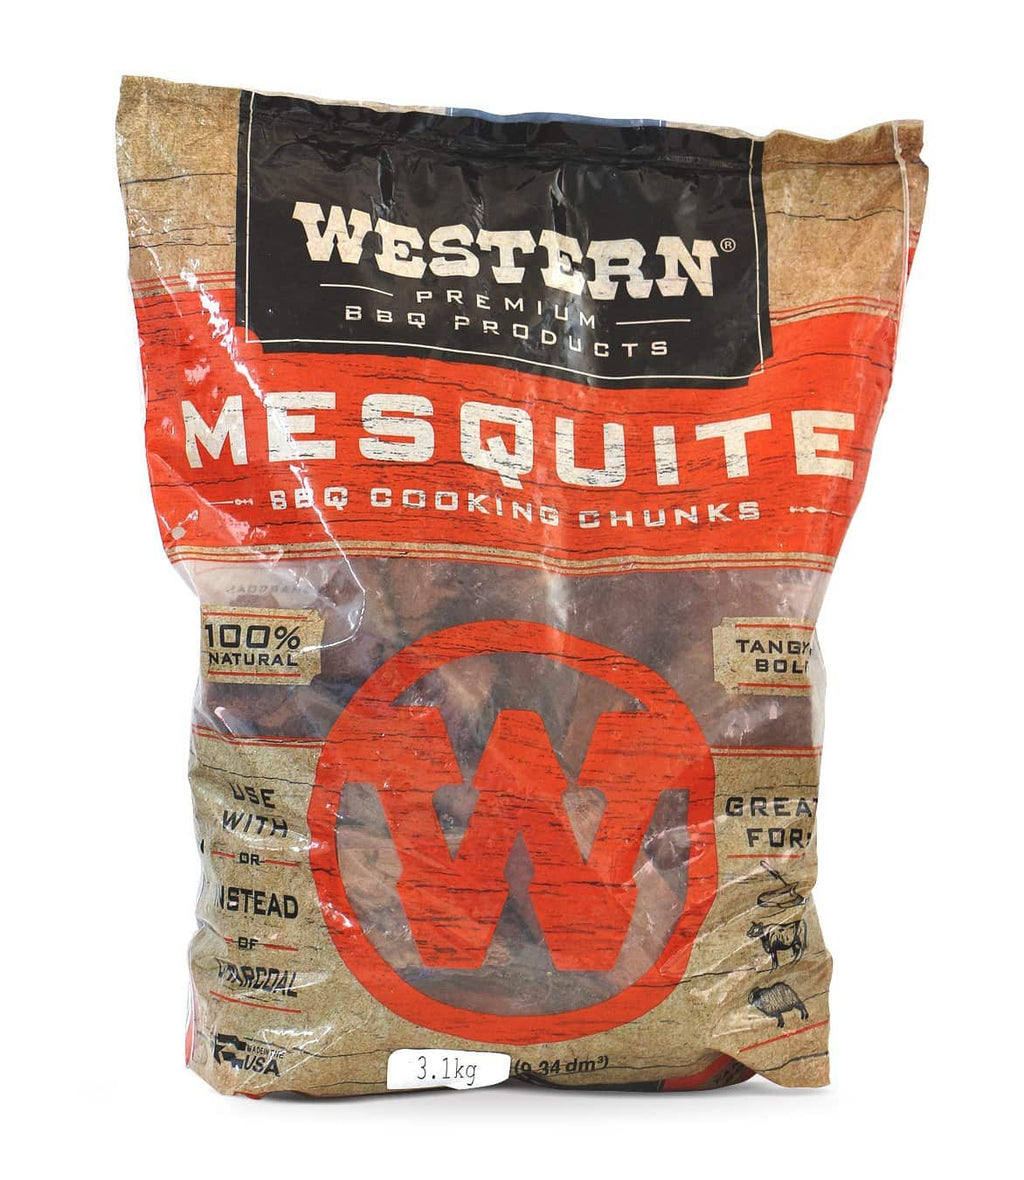 Western Mesquite Wood Chunks